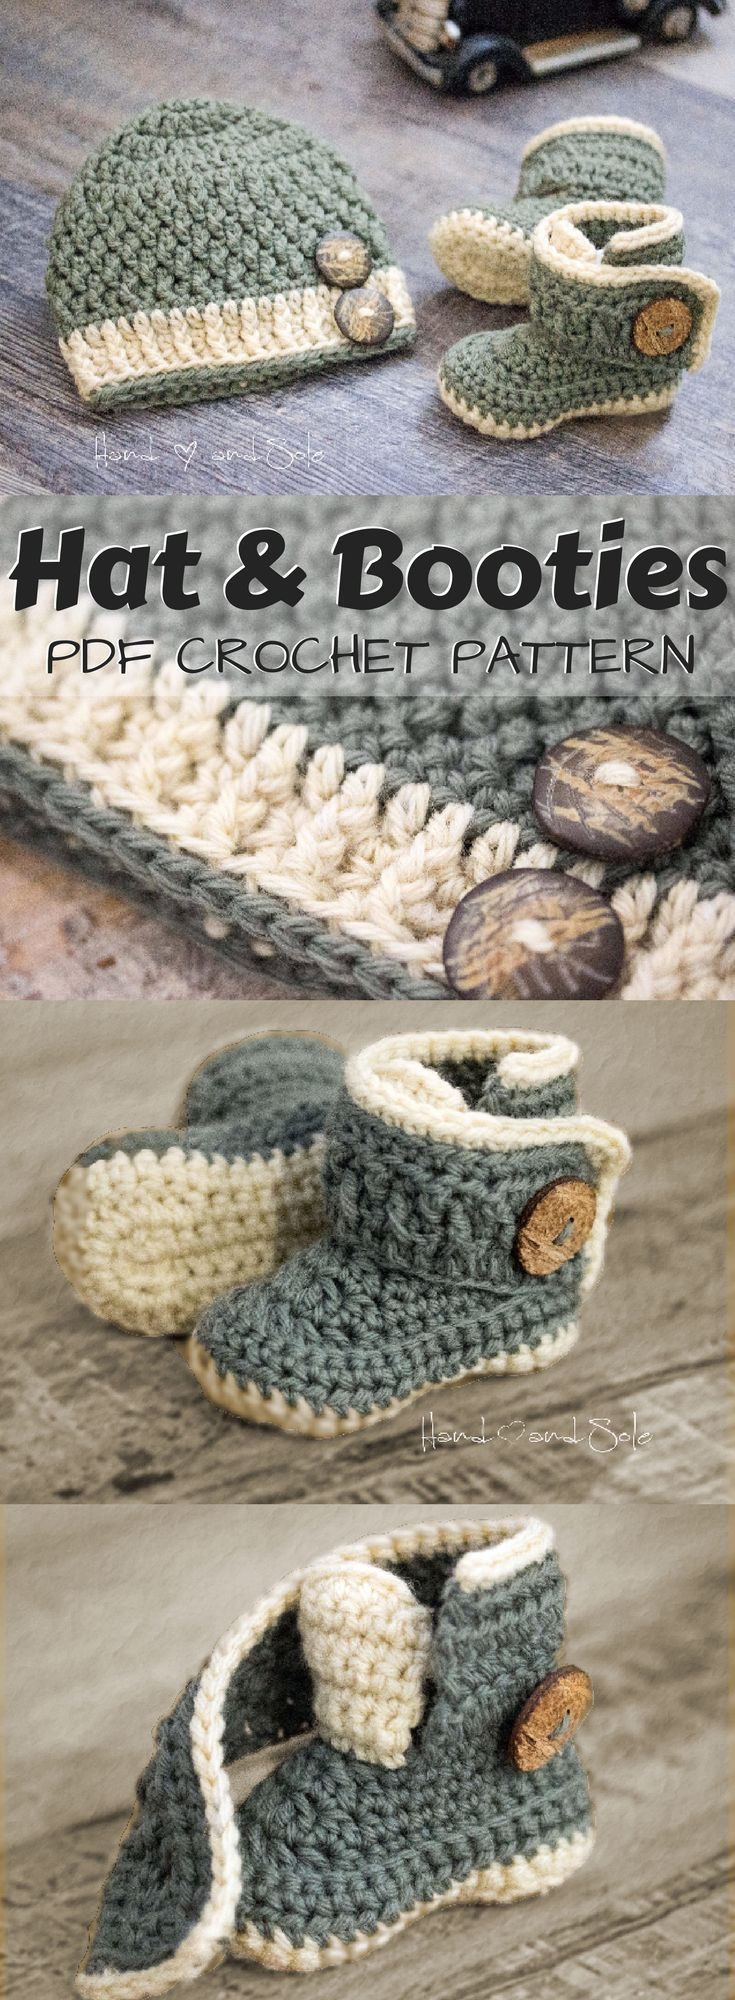 Adorable crochet pattern set for baby hat and booties. I love the cute button cl…